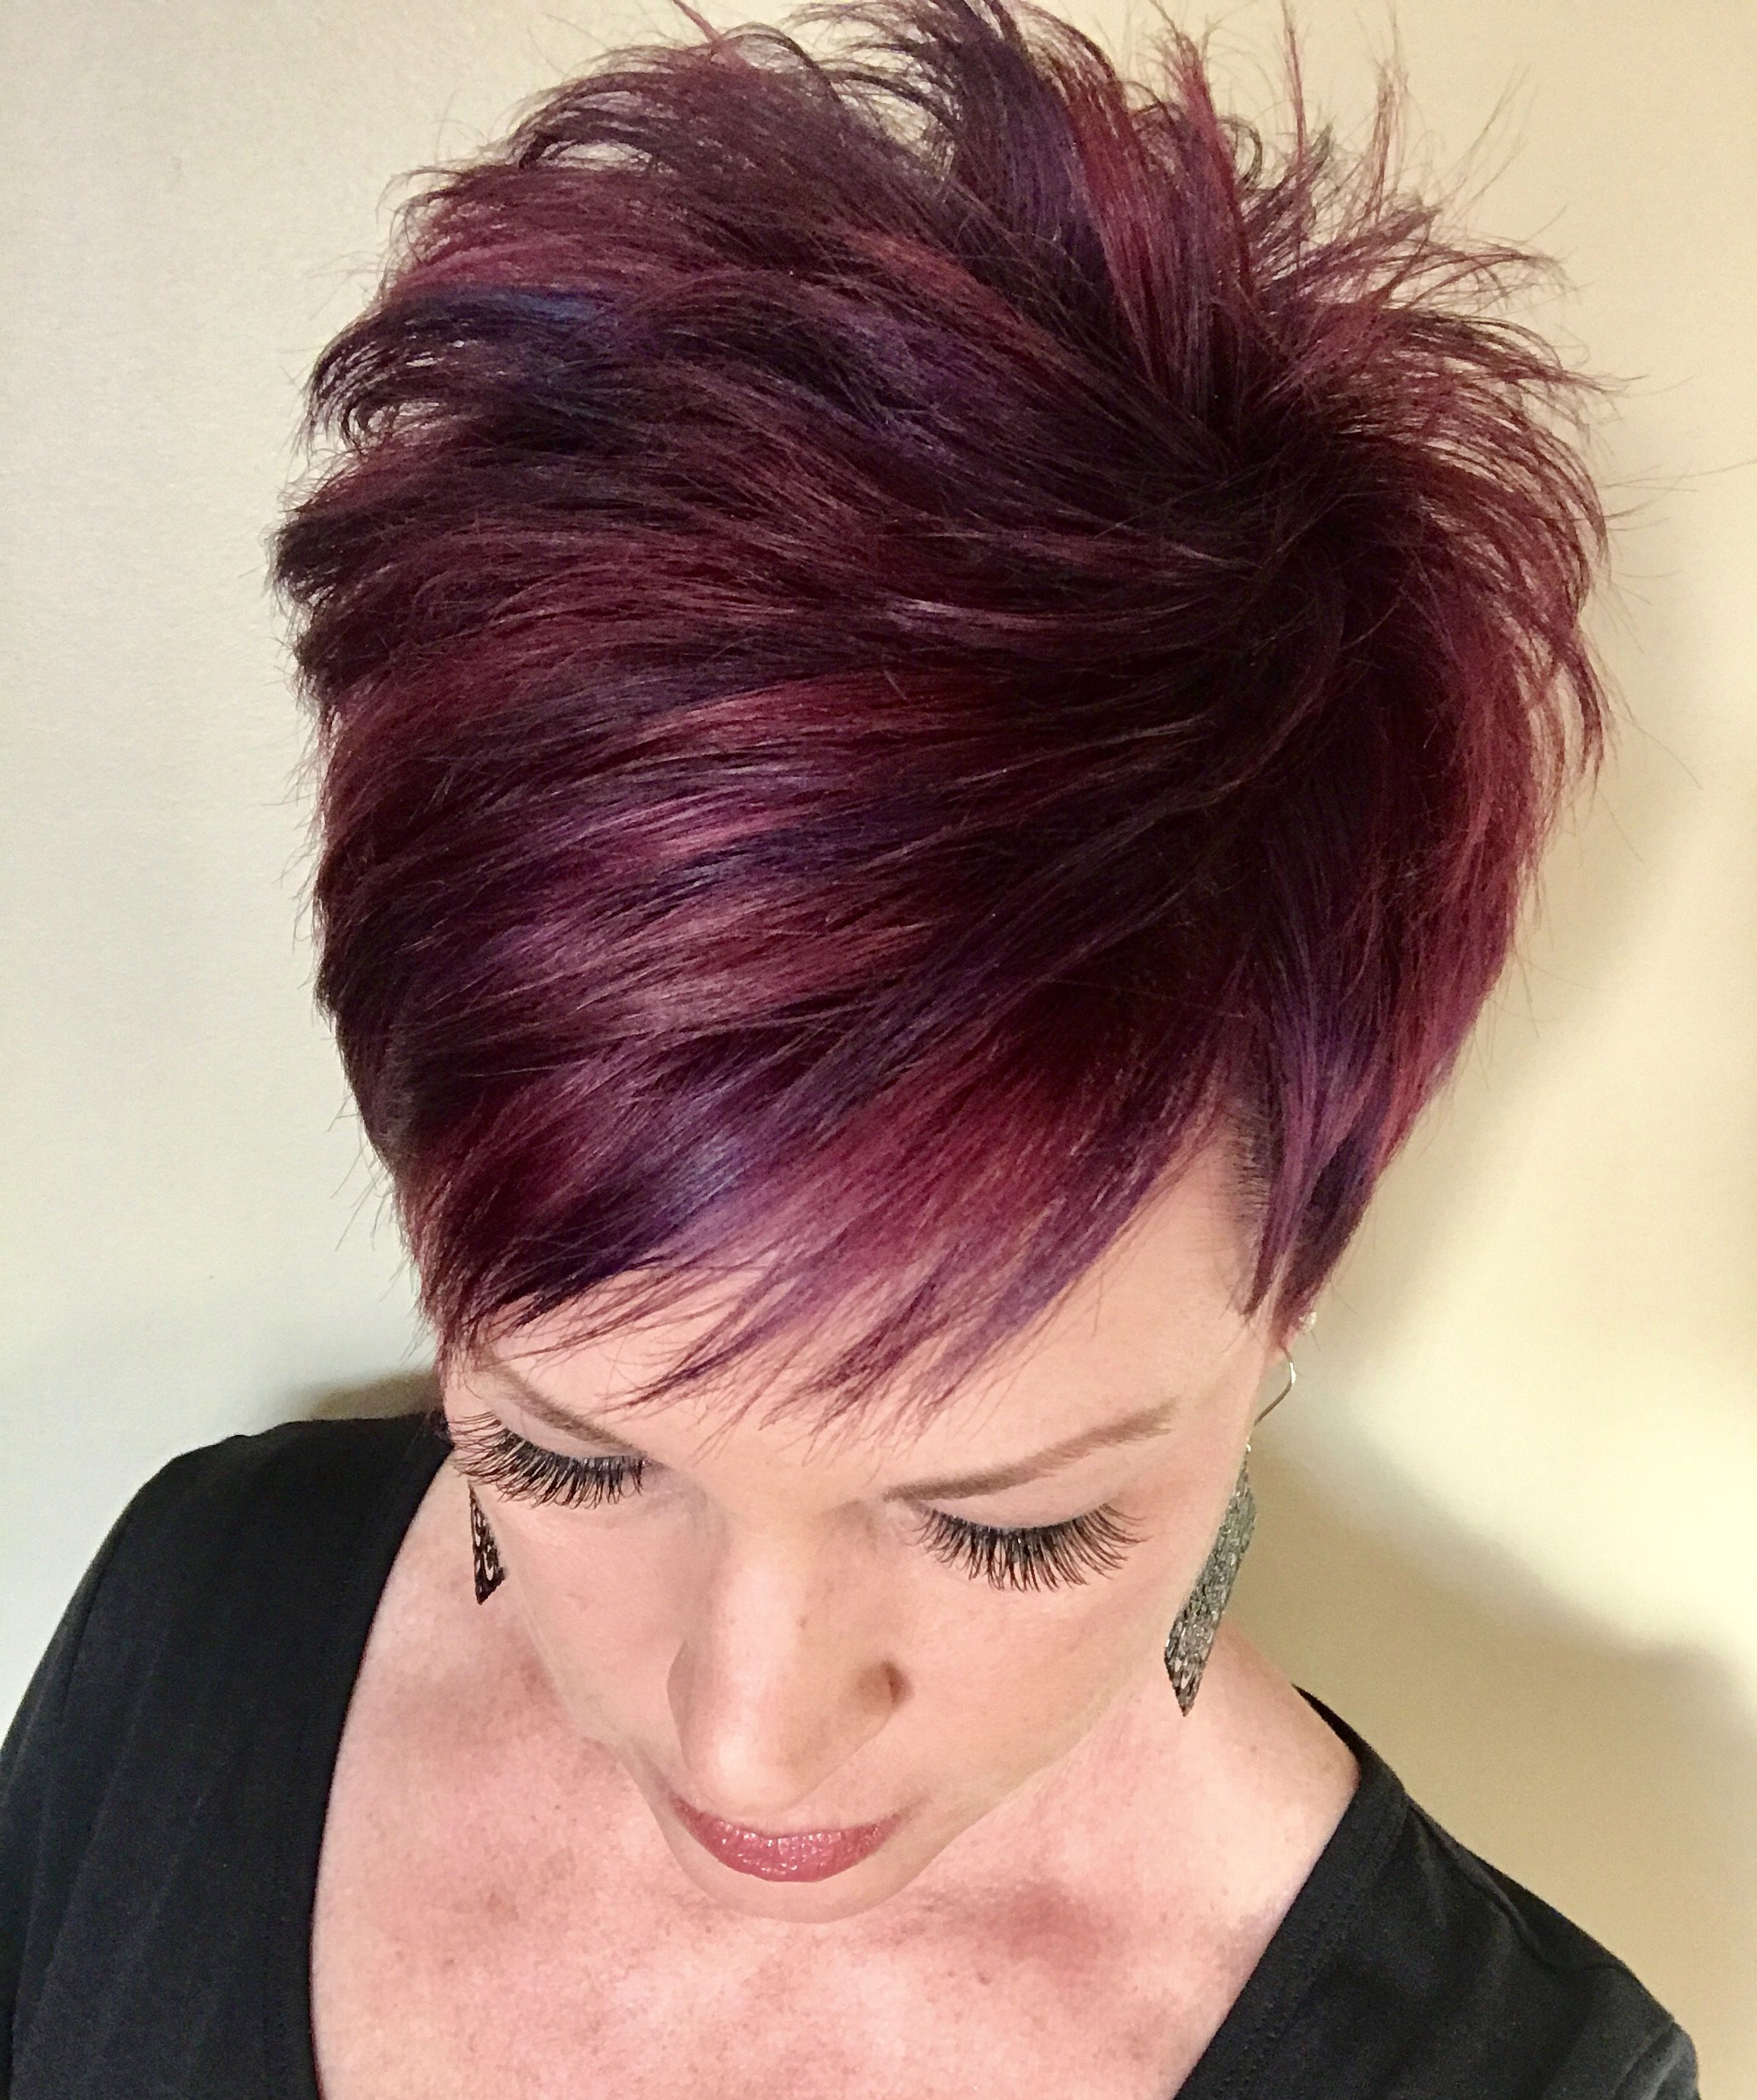 Korte Pixi | Kapsels | Pinterest | Short Hair, Hair Style And Hair Cuts Pertaining To Edgy Purple Tinted Pixie Haircuts (Gallery 7 of 20)